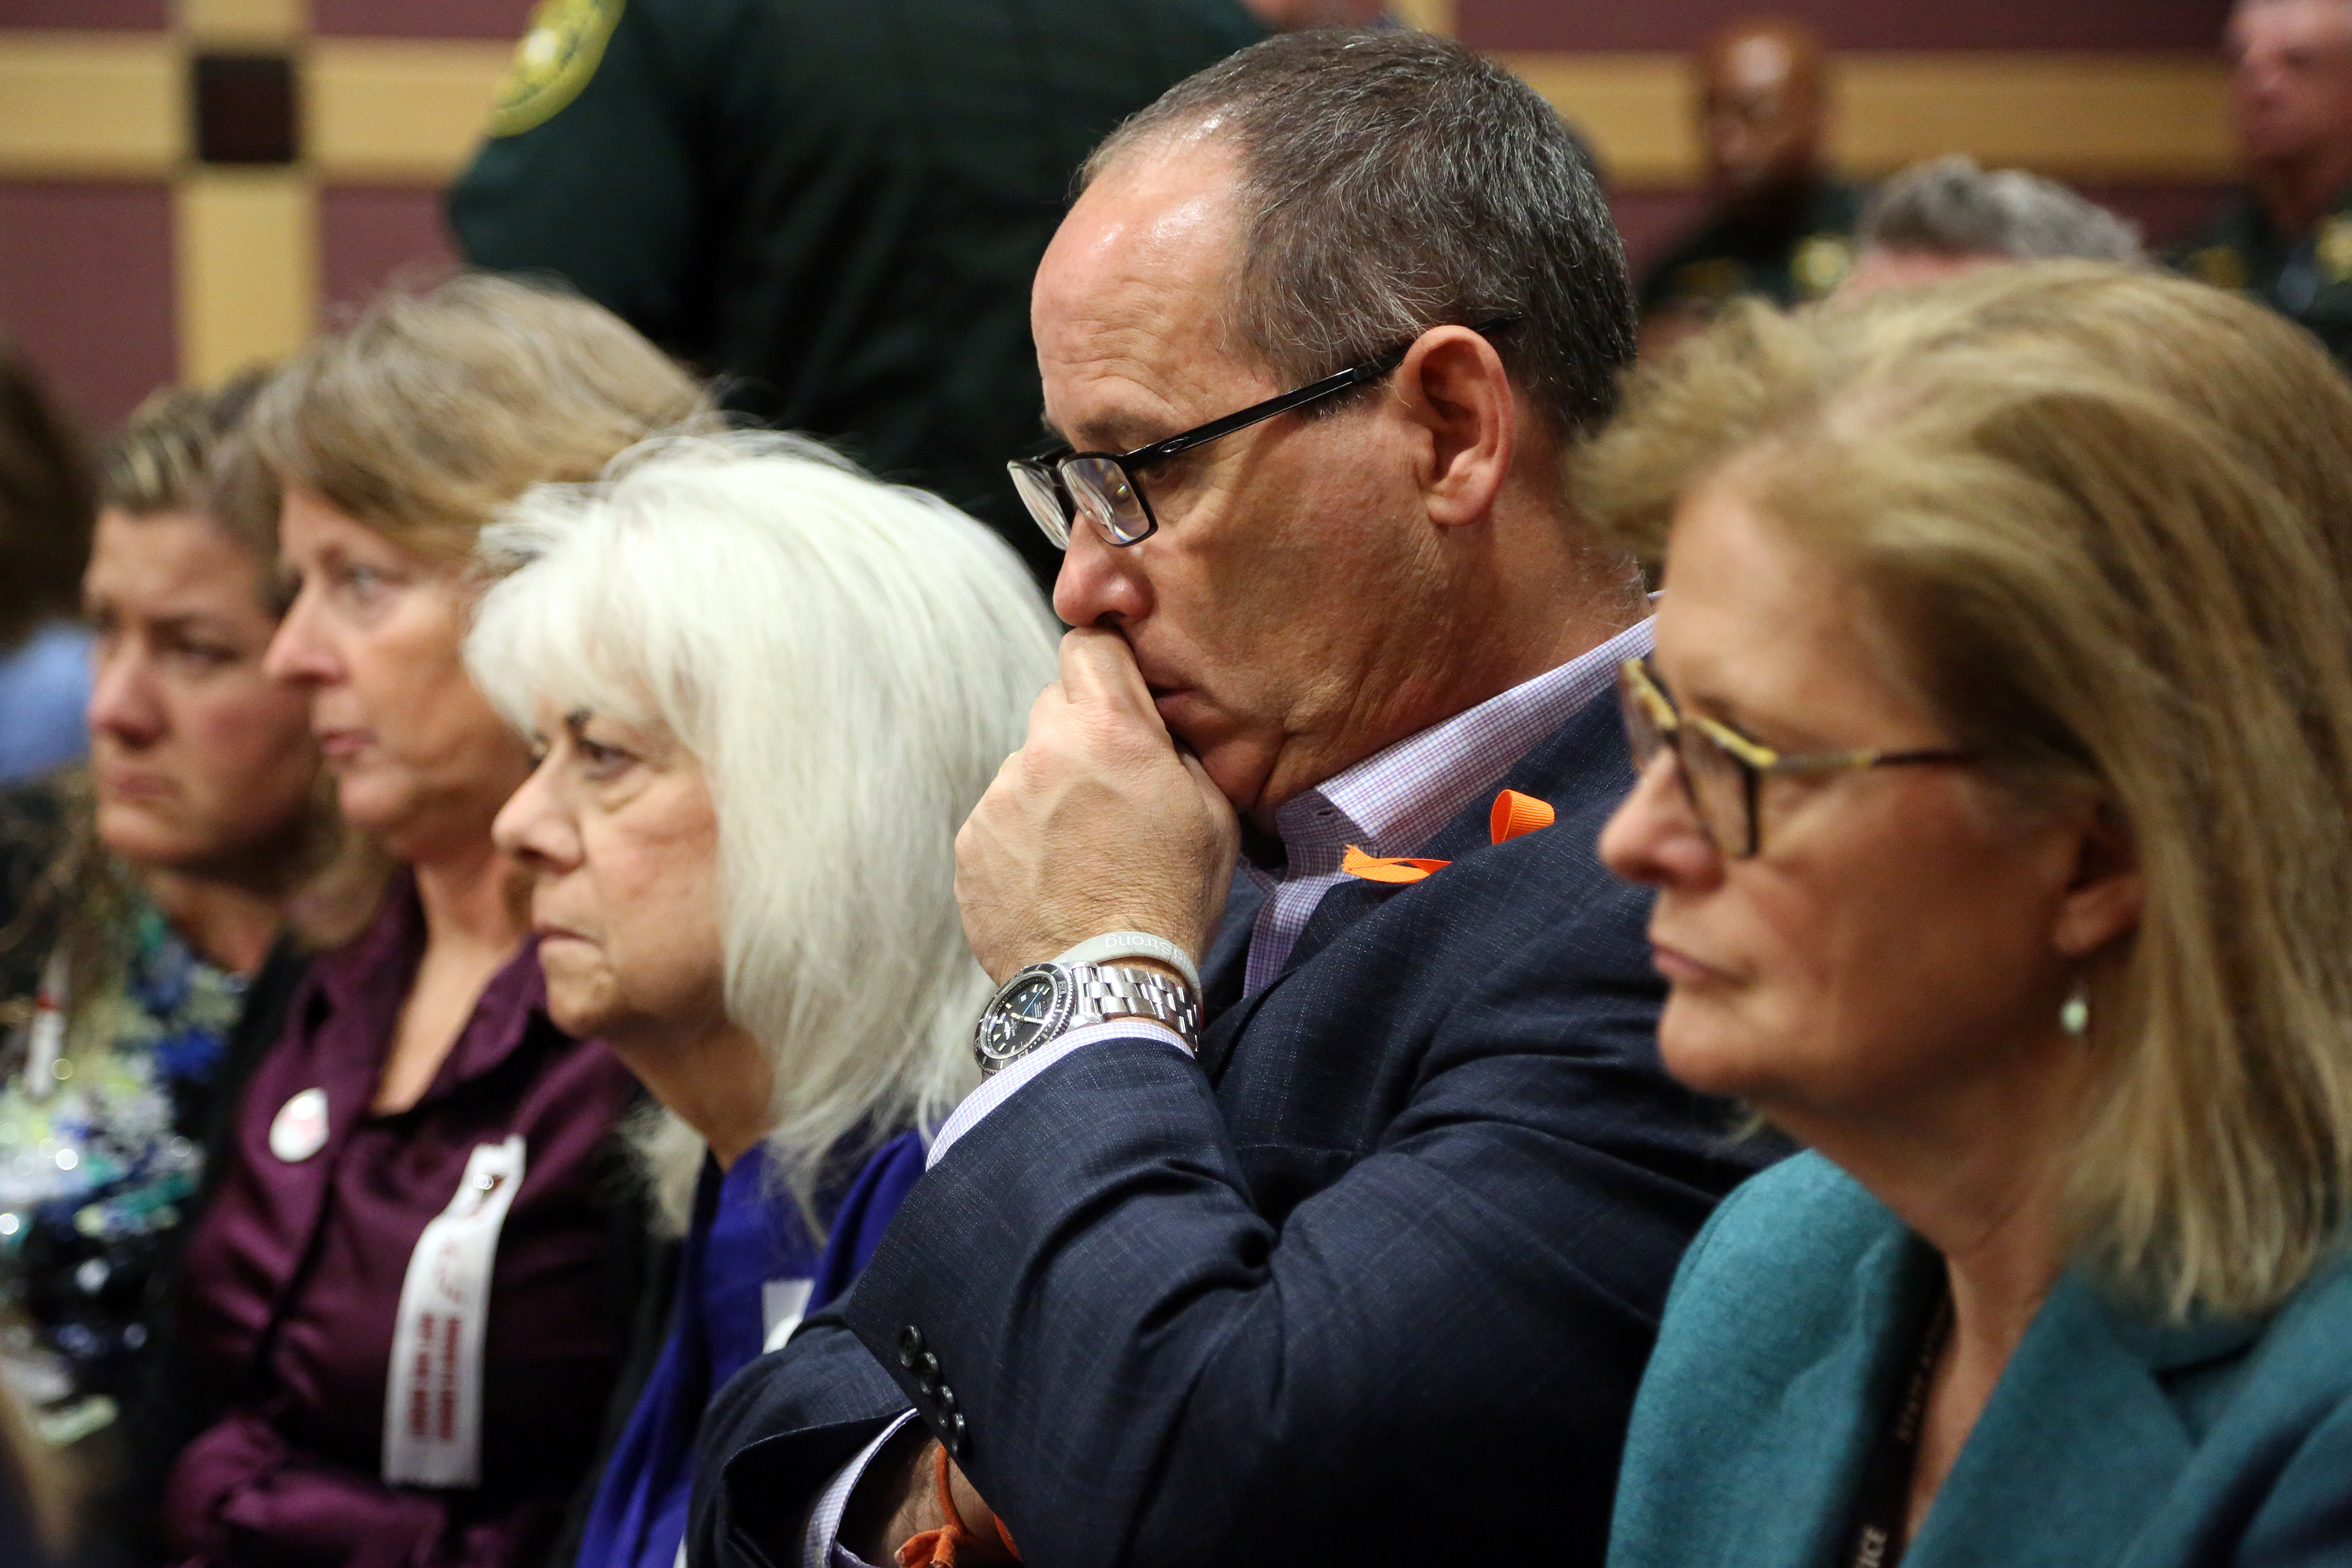 Fred Guttenberg listens to proceedings as Nikolas Cruz is arraigned at the Broward County Courthouse March 14, 2018 in in Fort Lauderdale, Florida. Cruz is accused of opening fire at Marjory Stoneman Douglas High School in Parkland on Feb. 14, killing 17 students and adults. Guttenberg's daughter, Jaime, was killed at the school. (Getty Images)